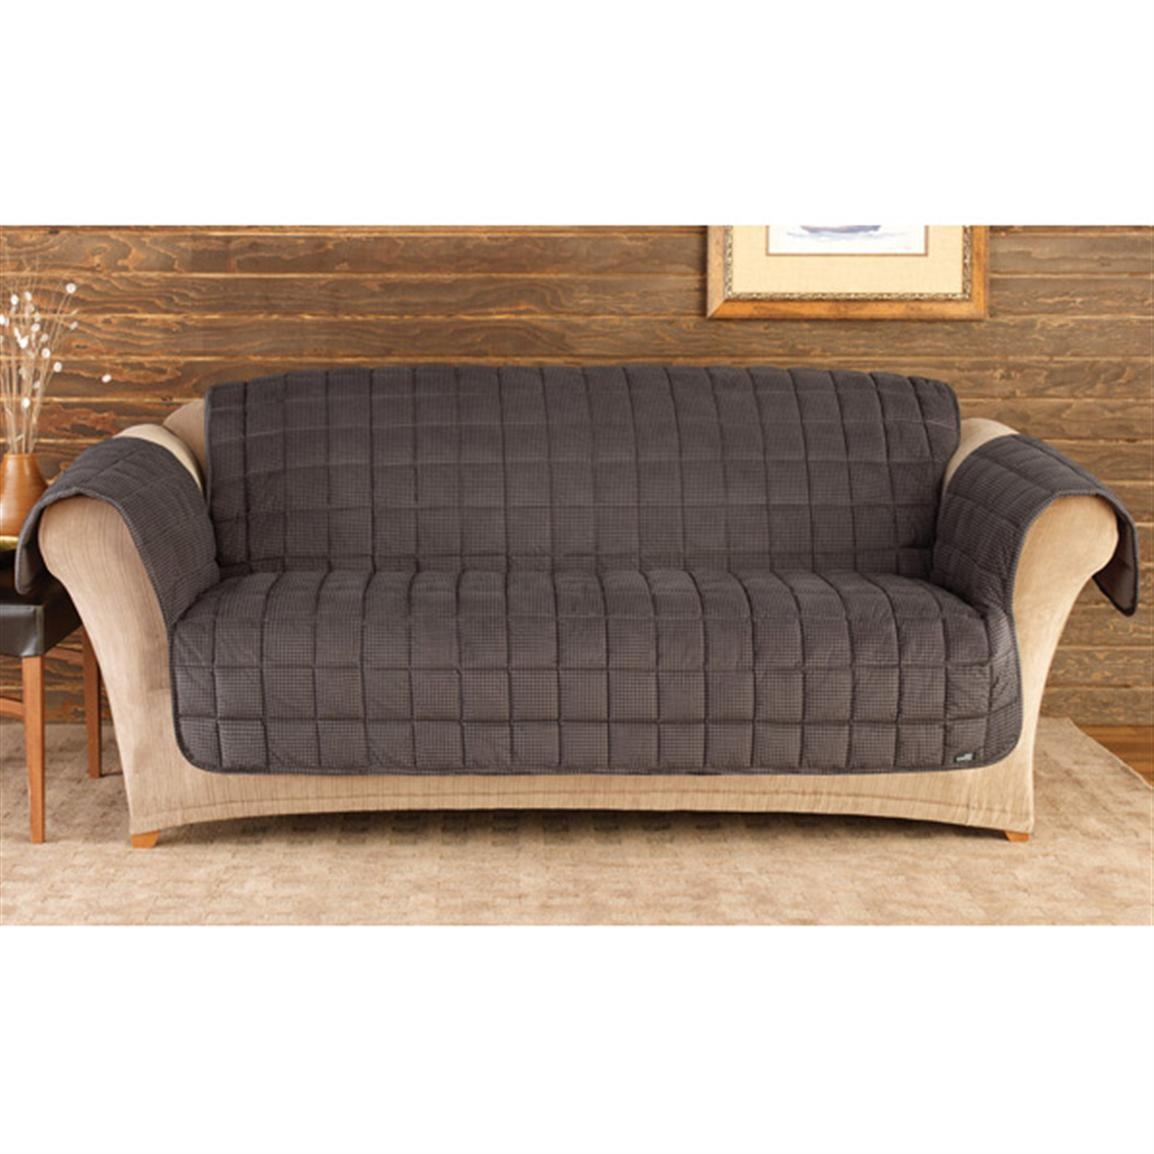 Sure Fit Deluxe Velvet Mini Check Sofa Pet Cover, Black And Brown Throughout Sofas With Black Cover (Image 20 of 20)